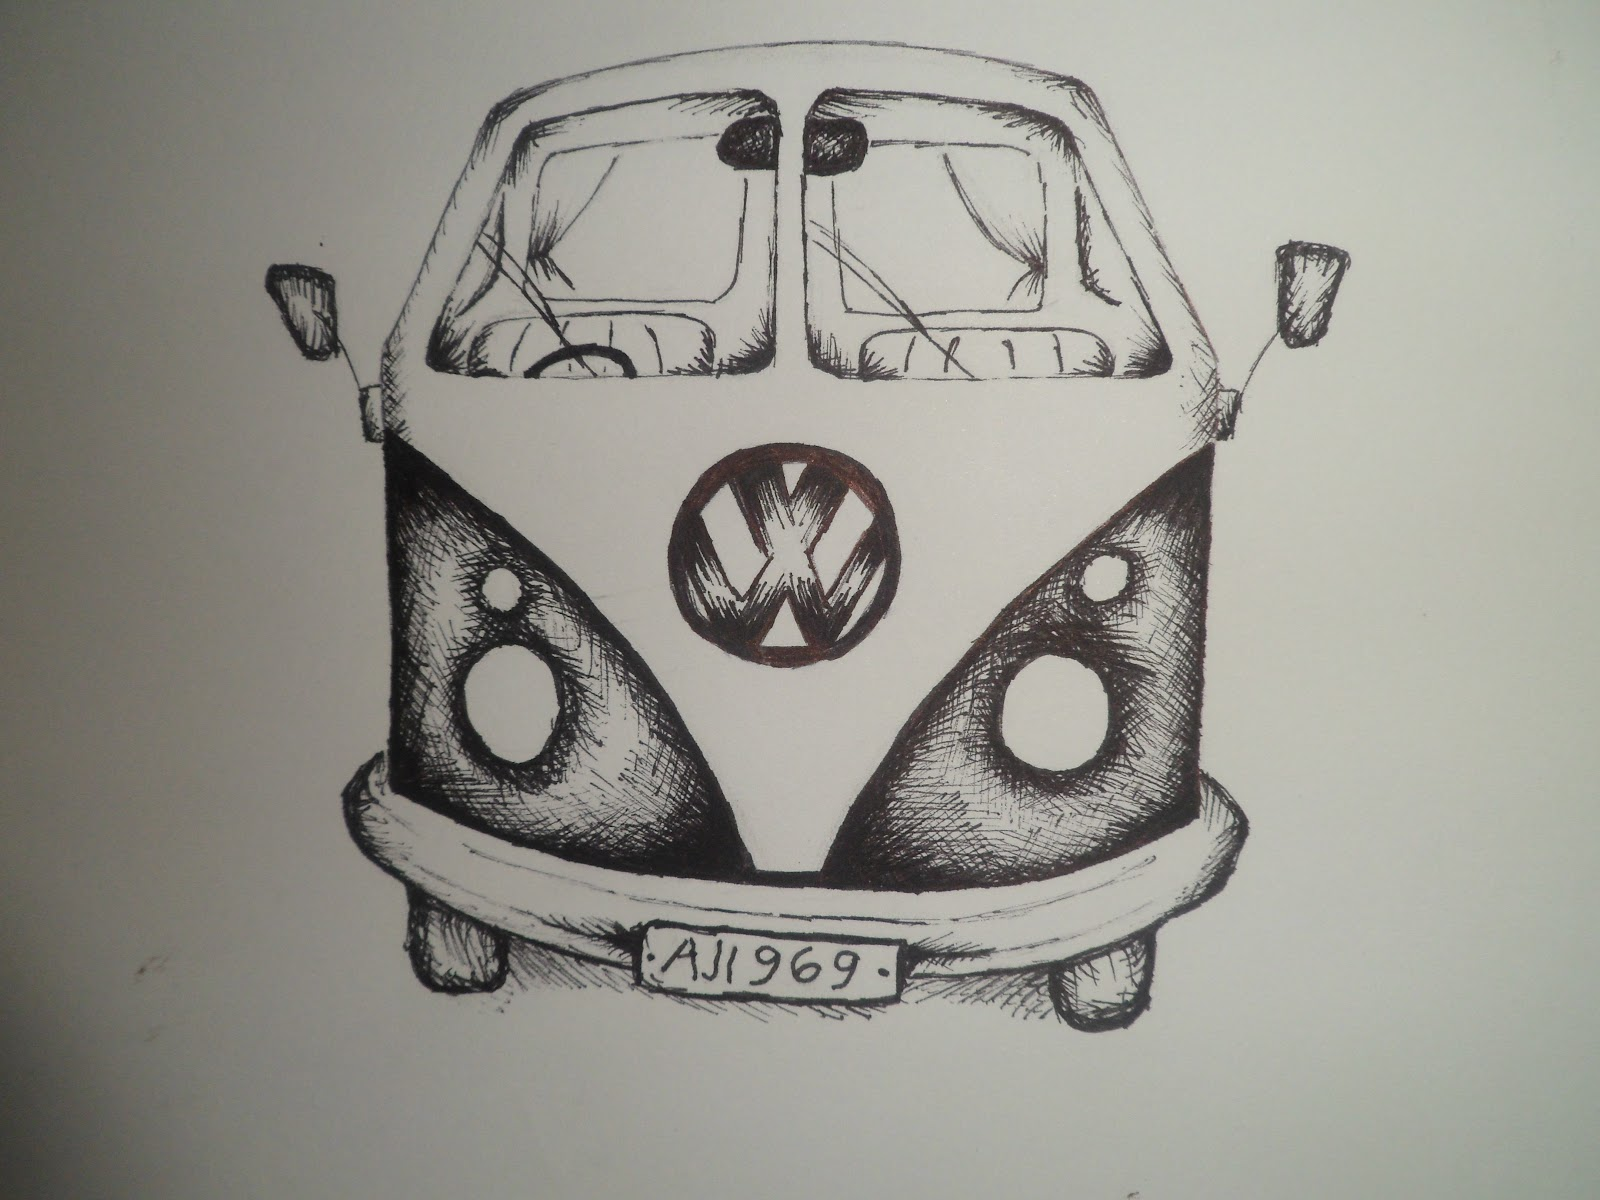 Drawn vans simple VAN Pinterest TO DRAW 6